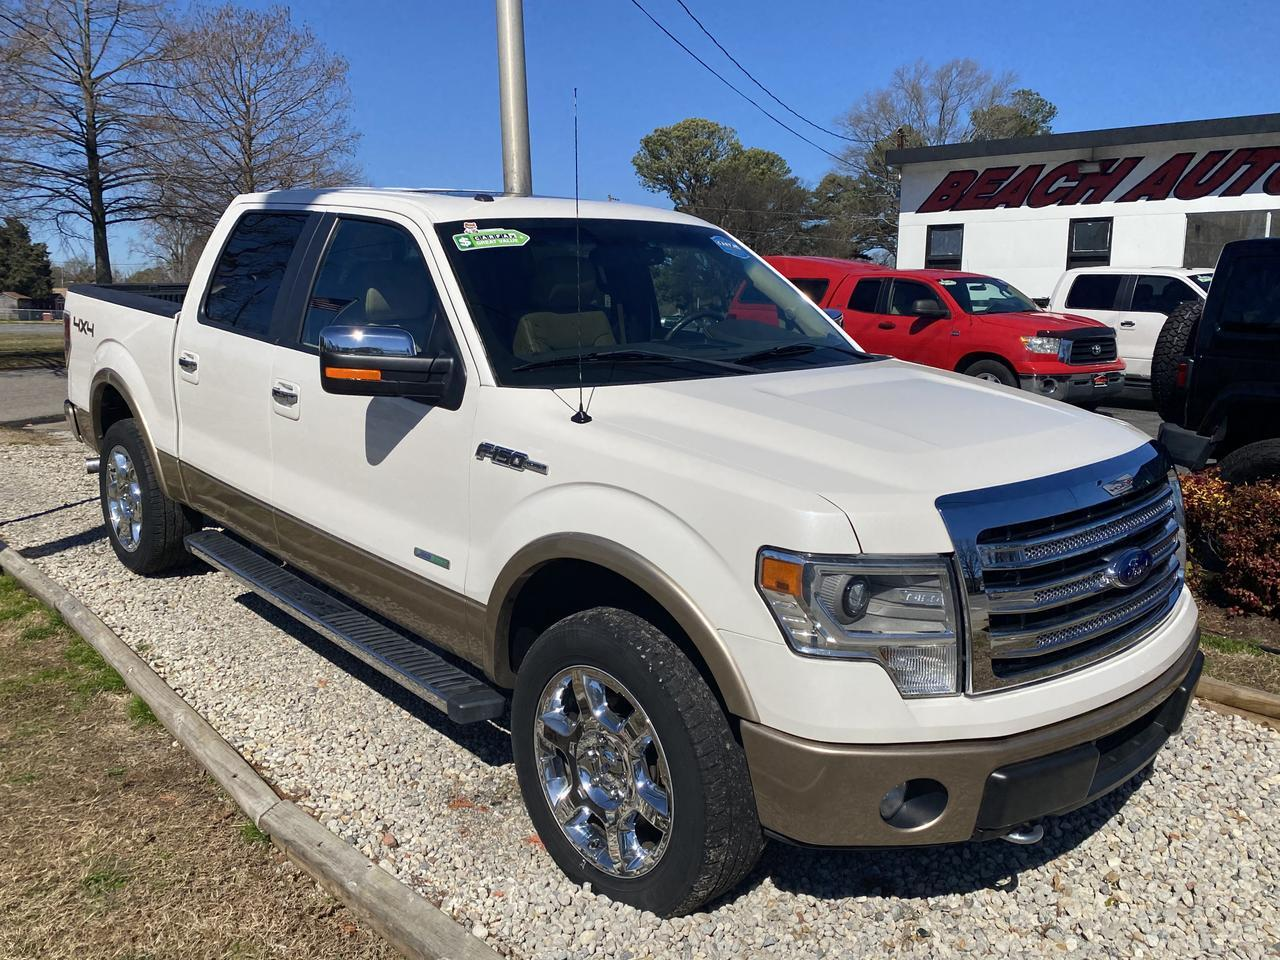 2014 FORD F-150 LARIAT SUPERCREW 4X4, WARRANTY, LEATHER, NAV, HEATED/COOLED SEATS, SUNROOF, BACKUP CAM! Norfolk VA